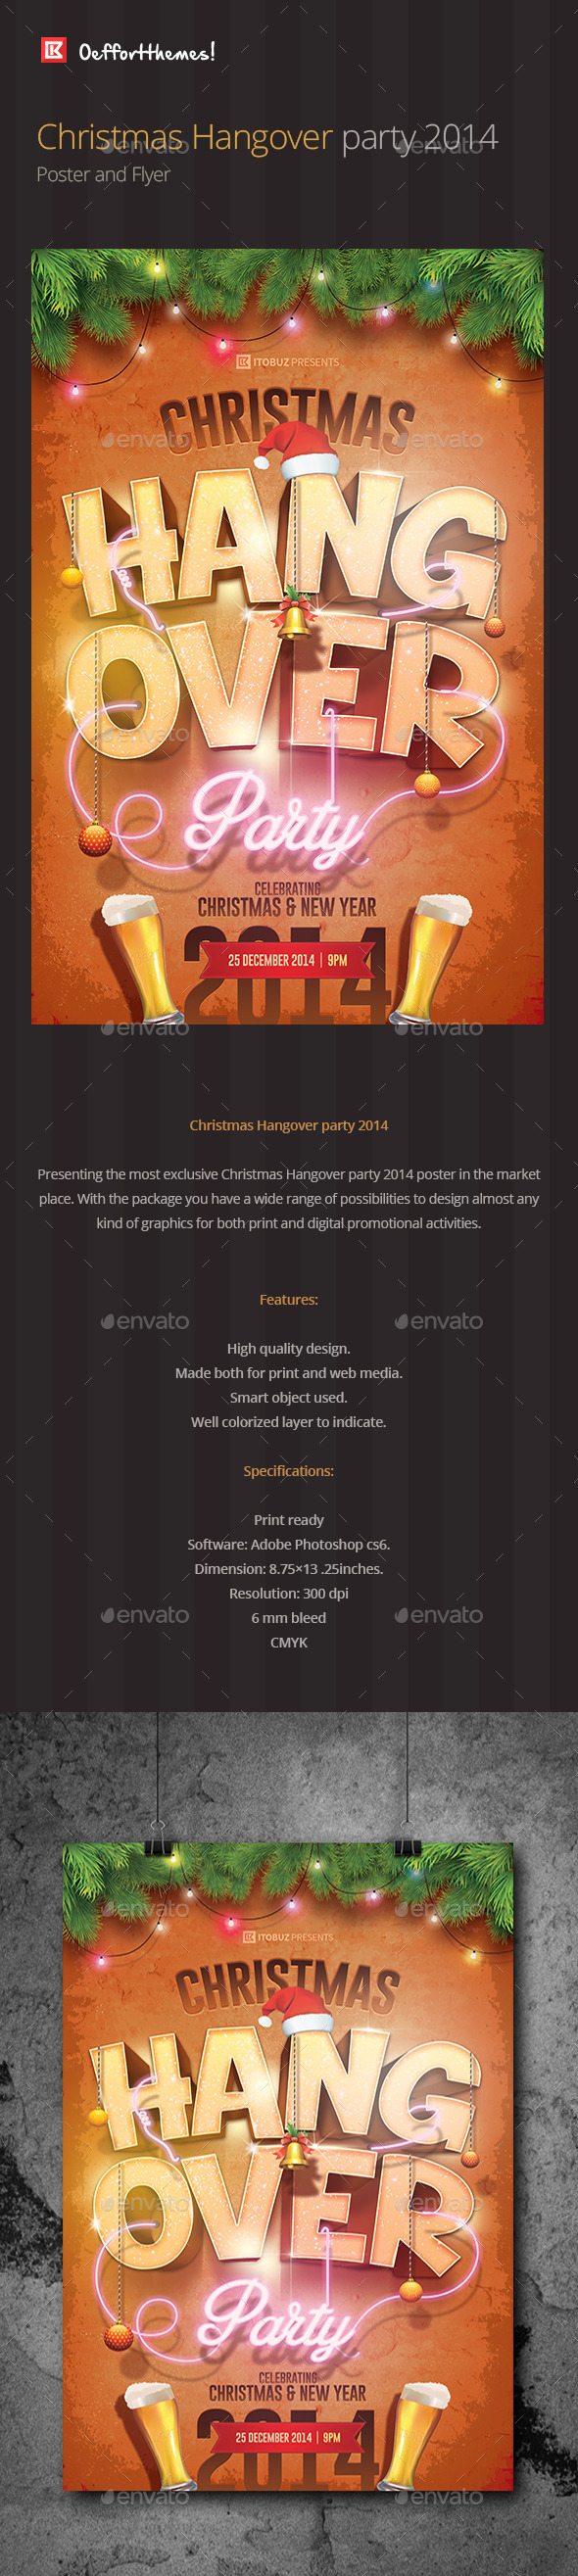 Christmas Hangover Party Poster and Flyer - Events Flyers